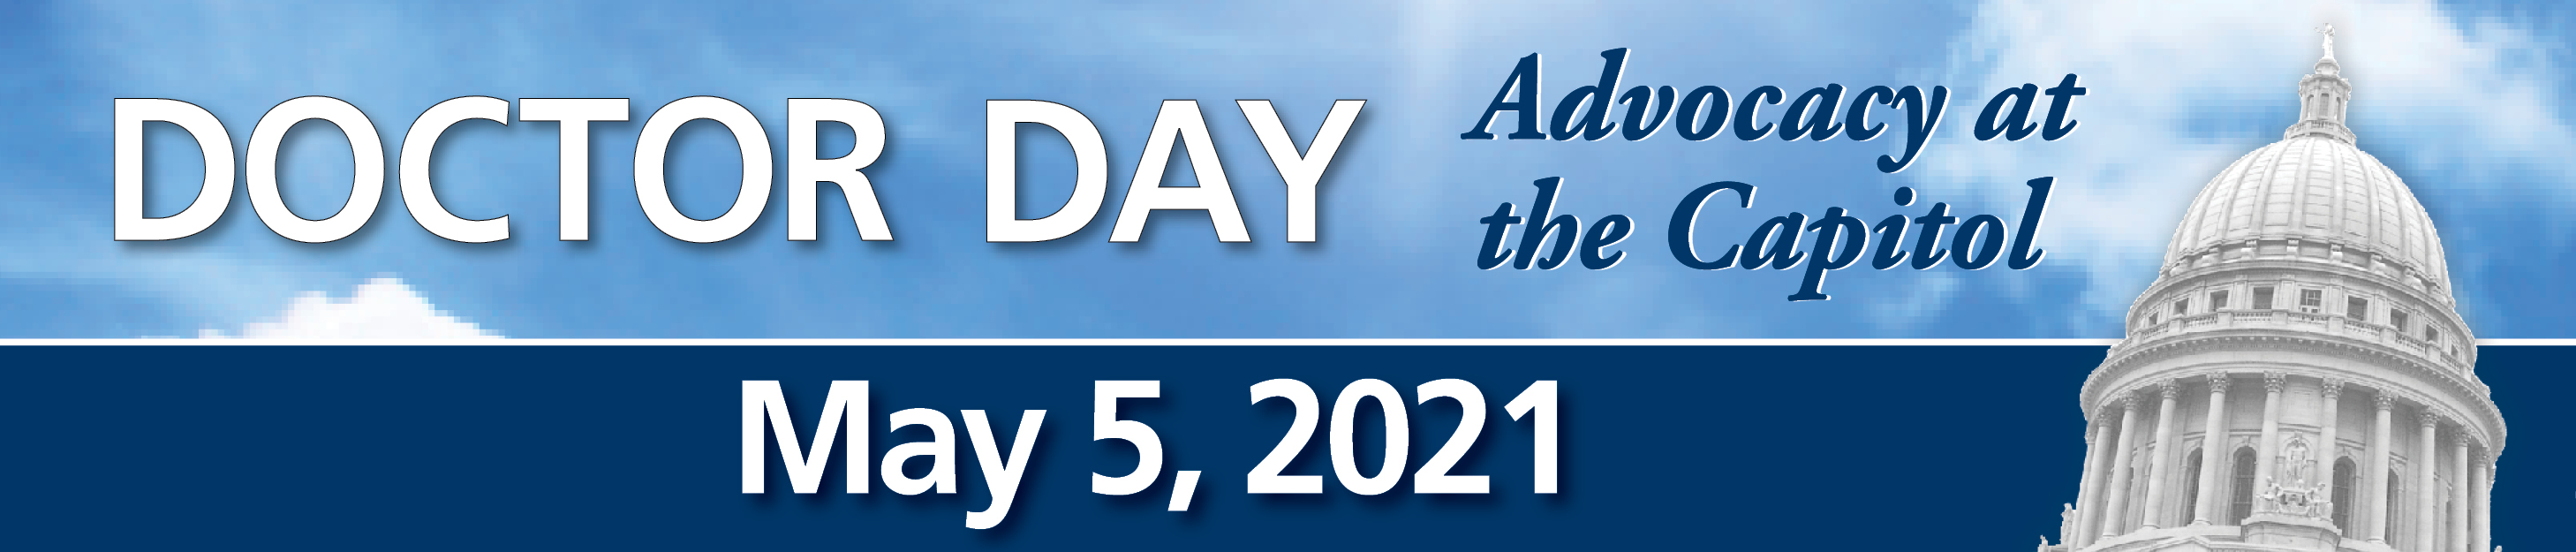 Doctor Day - May 5, 2021 - Advocacy at the Capitol